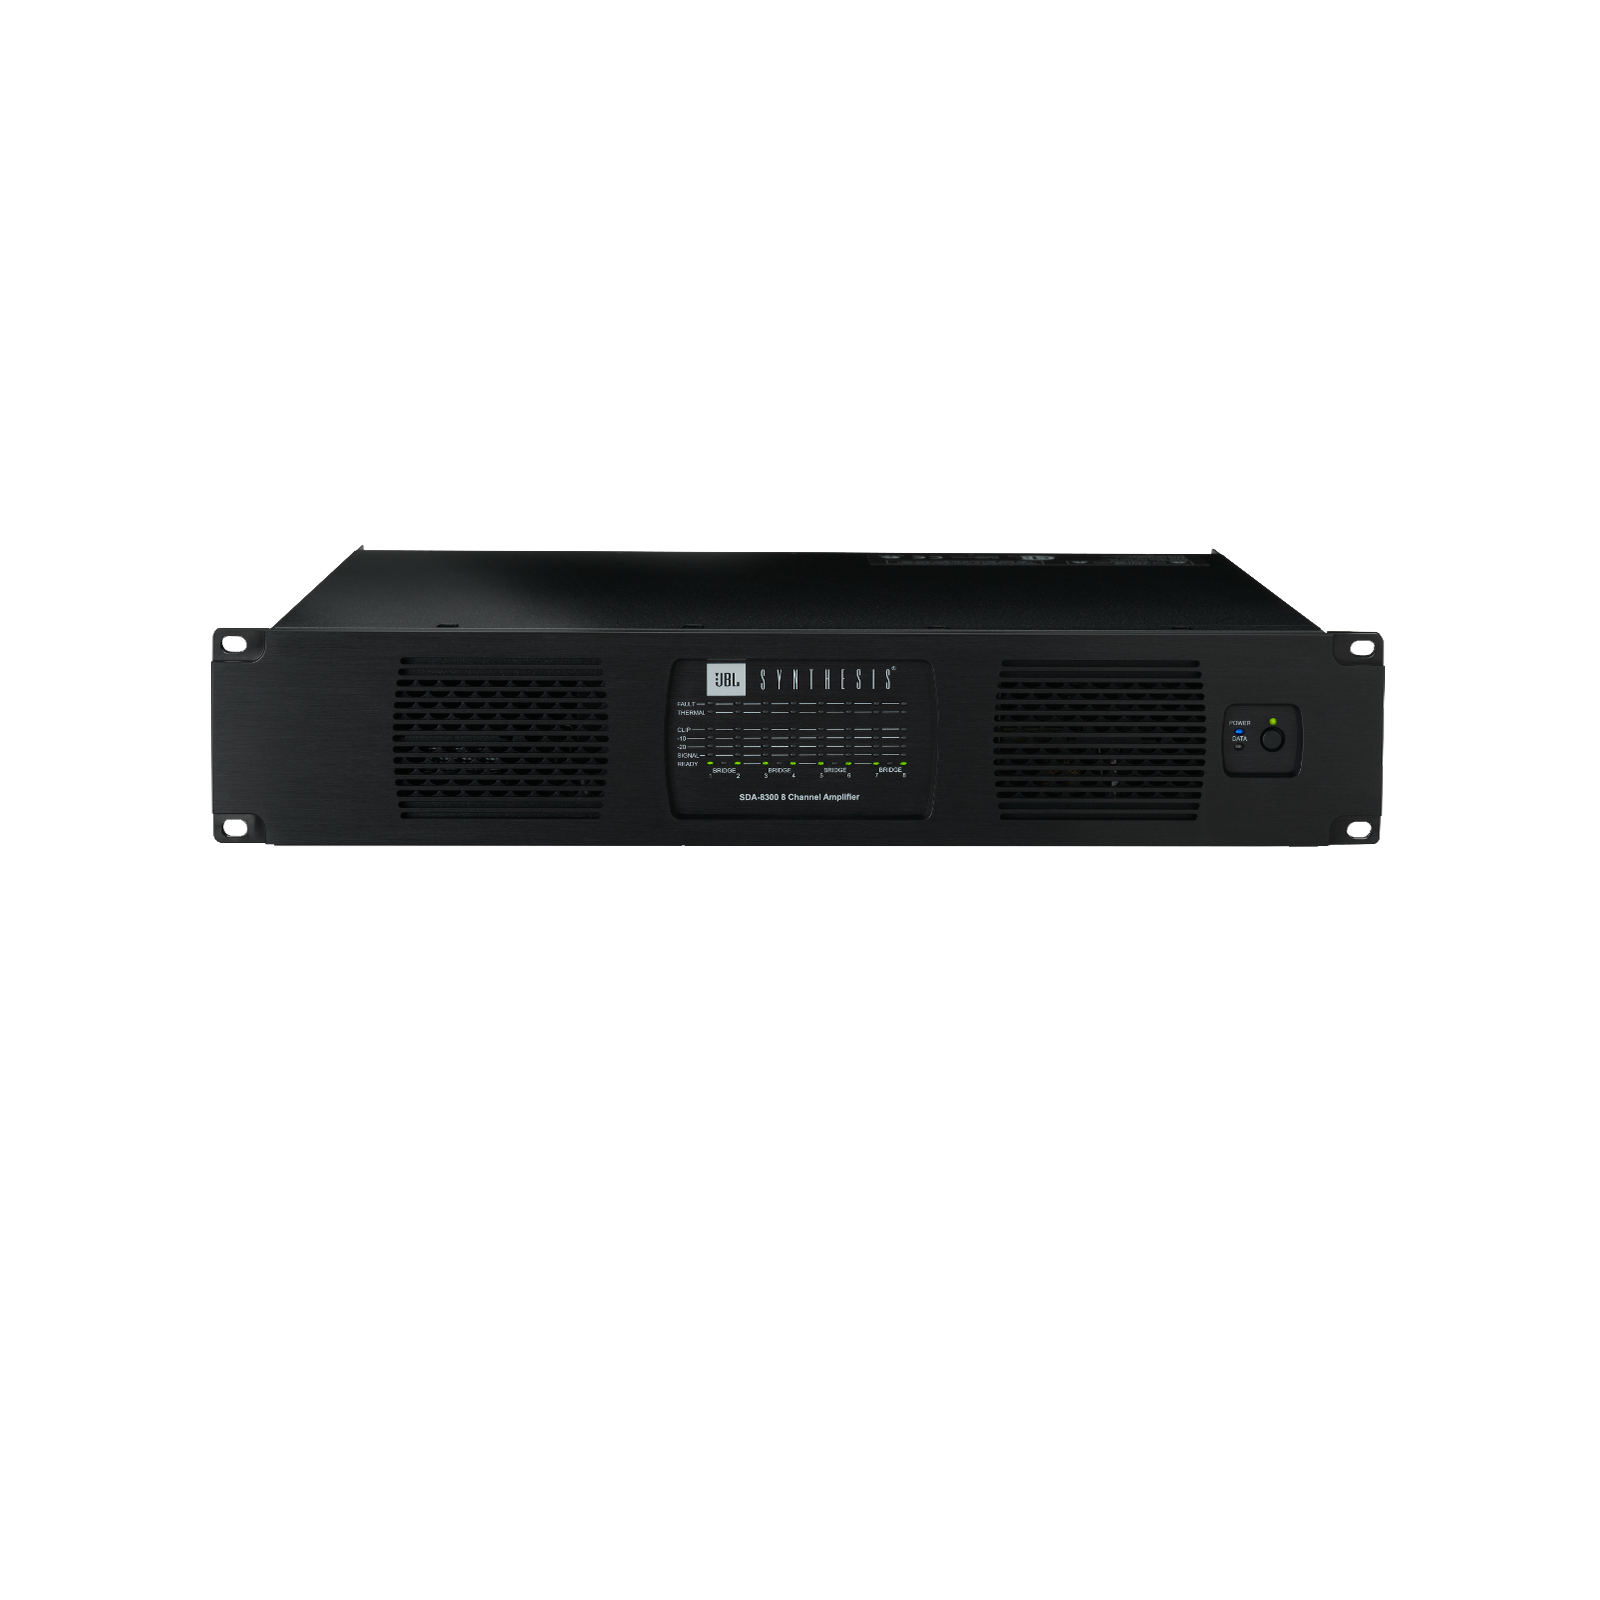 SDA 8300 - Black - SDA 8300 High-performance Installation Amplifier - Front